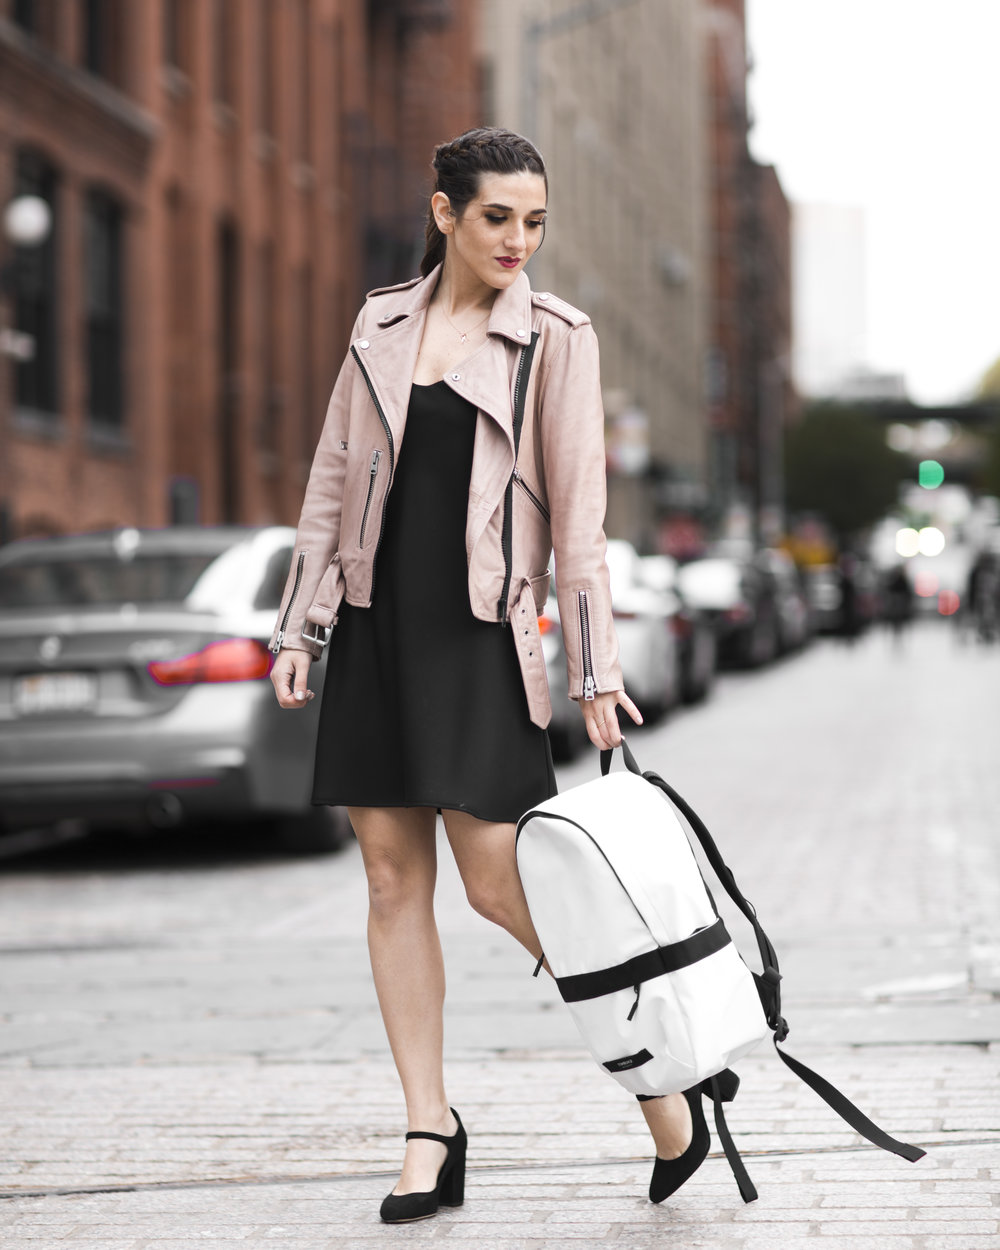 The Perfect Travel Backpack Timbuk2 Louboutins & Love Fashion Blog Esther Santer NYC Street Style Blogger Outfit OOTD Trendy All Saints Blush Pink Leather Backpack Black Pumps Shoes Heels Slip Dress Hair Ponytail Braids Inspo Girls Women Vacation Bag.jpg